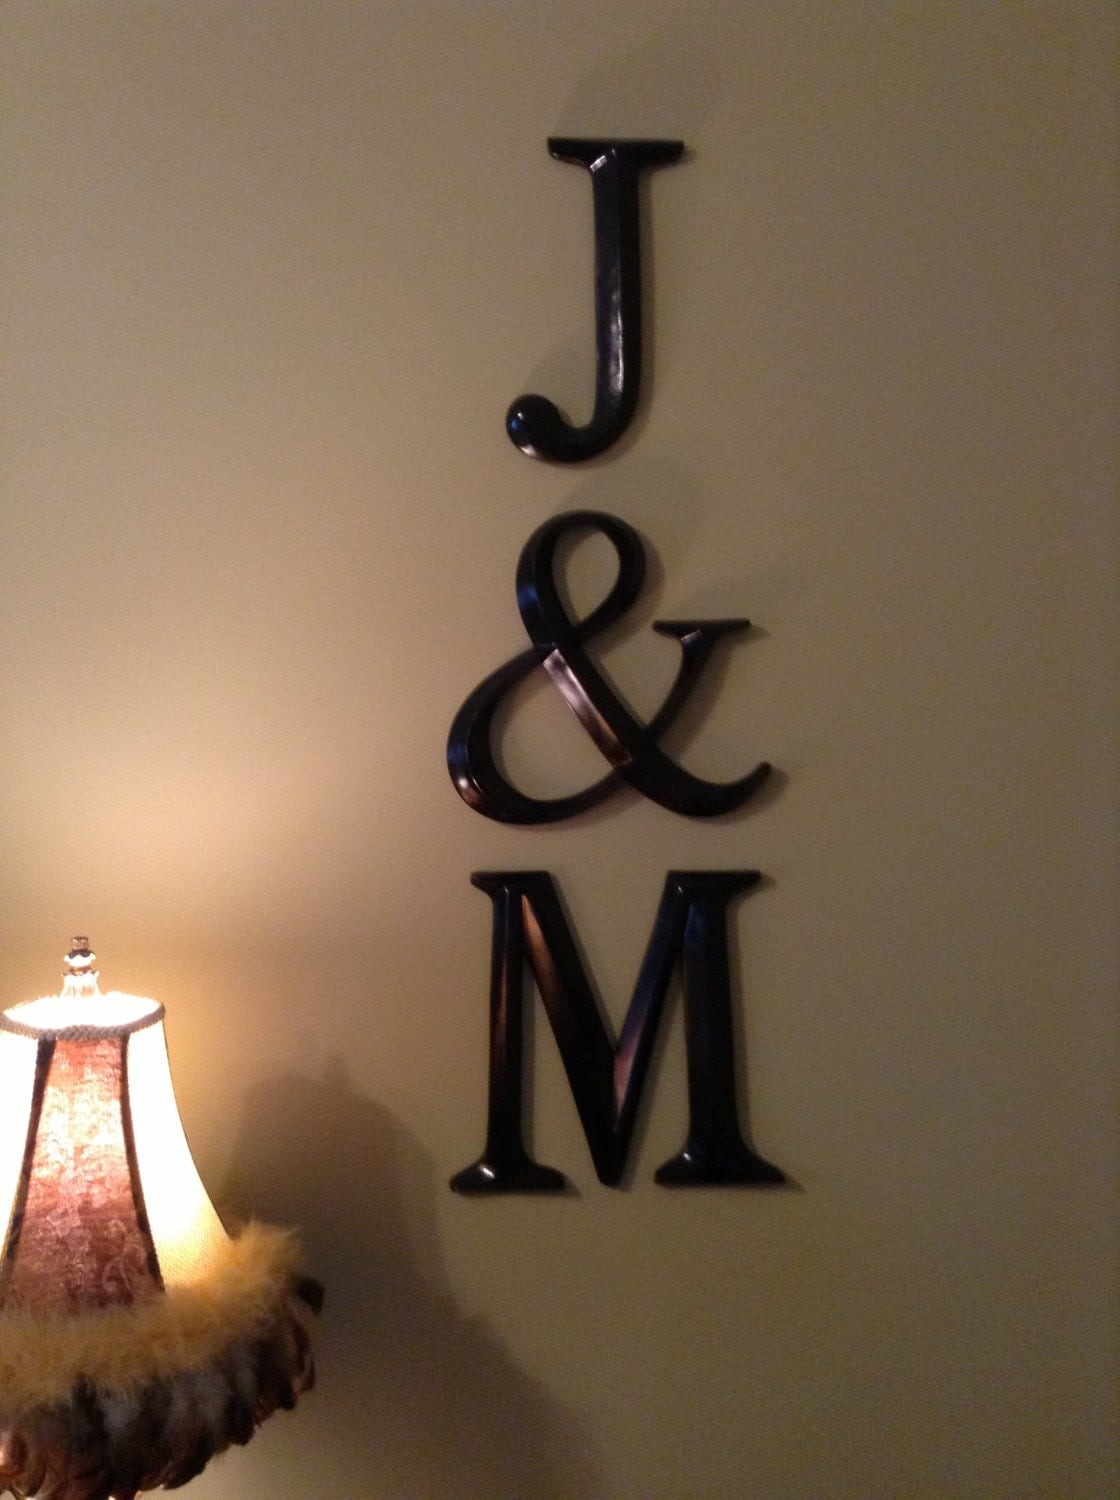 decorative letters for wall wall decor large letter decor wedding decor your 21332 | il fullxfull.426963288 10kj